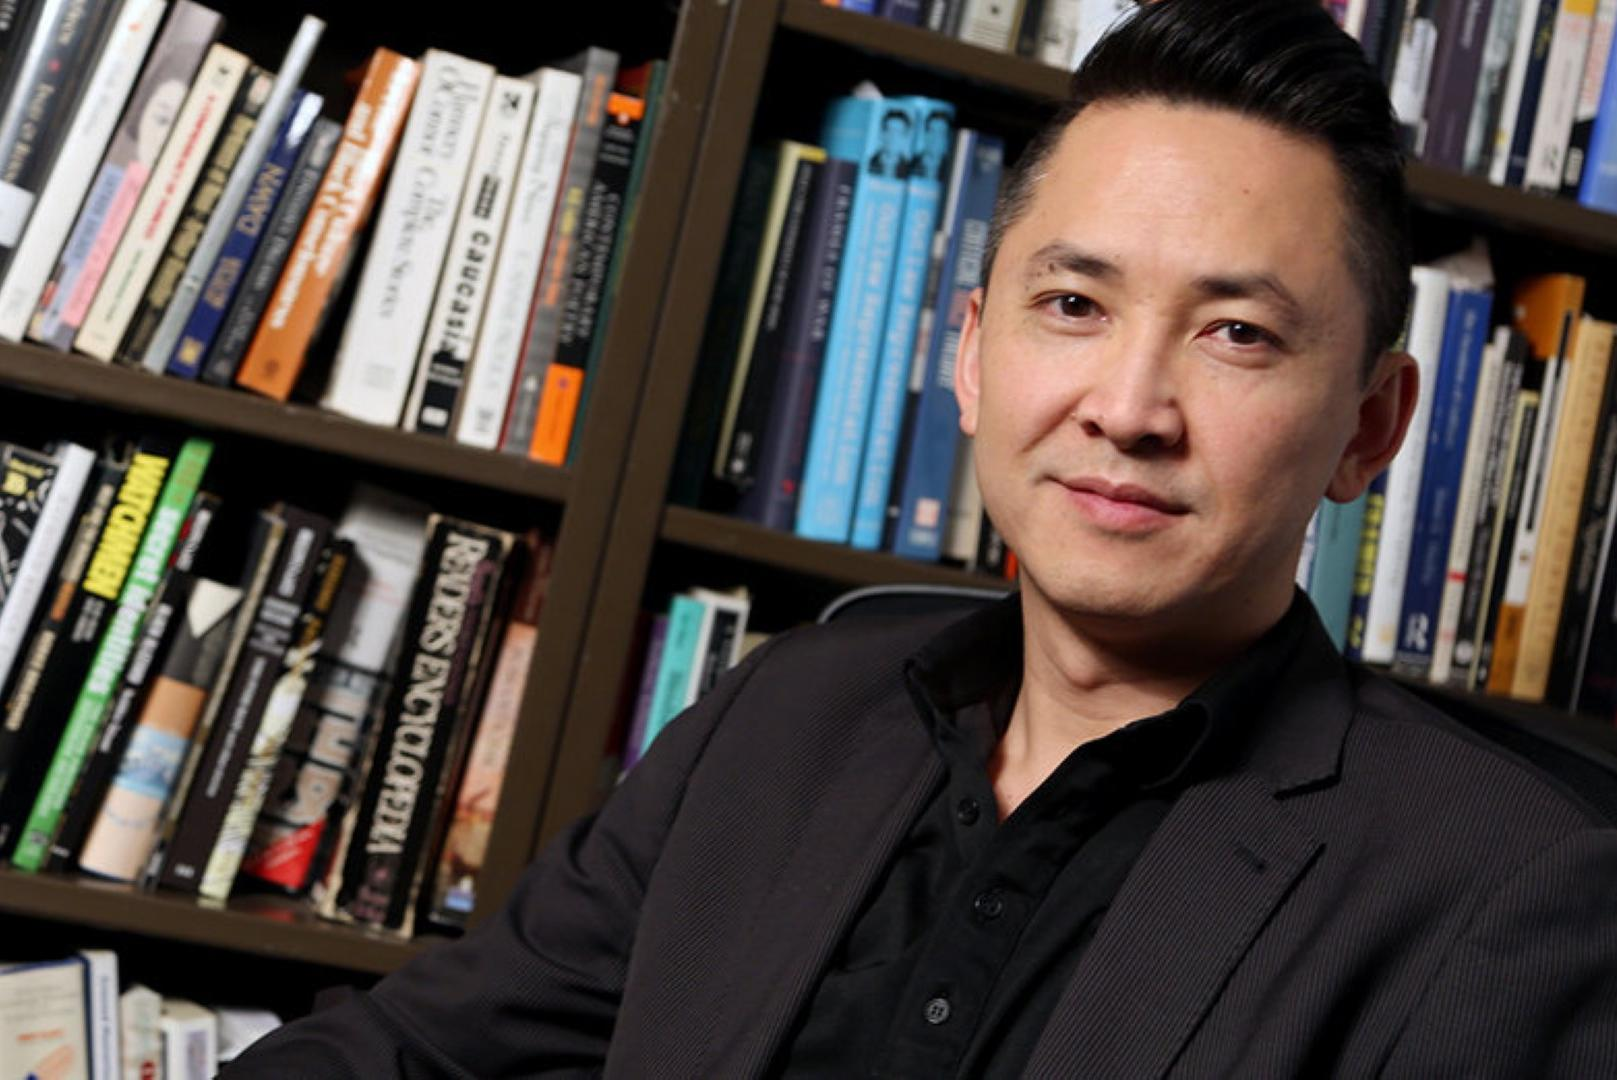 Viet Thanh Nguyen sitting in front of books